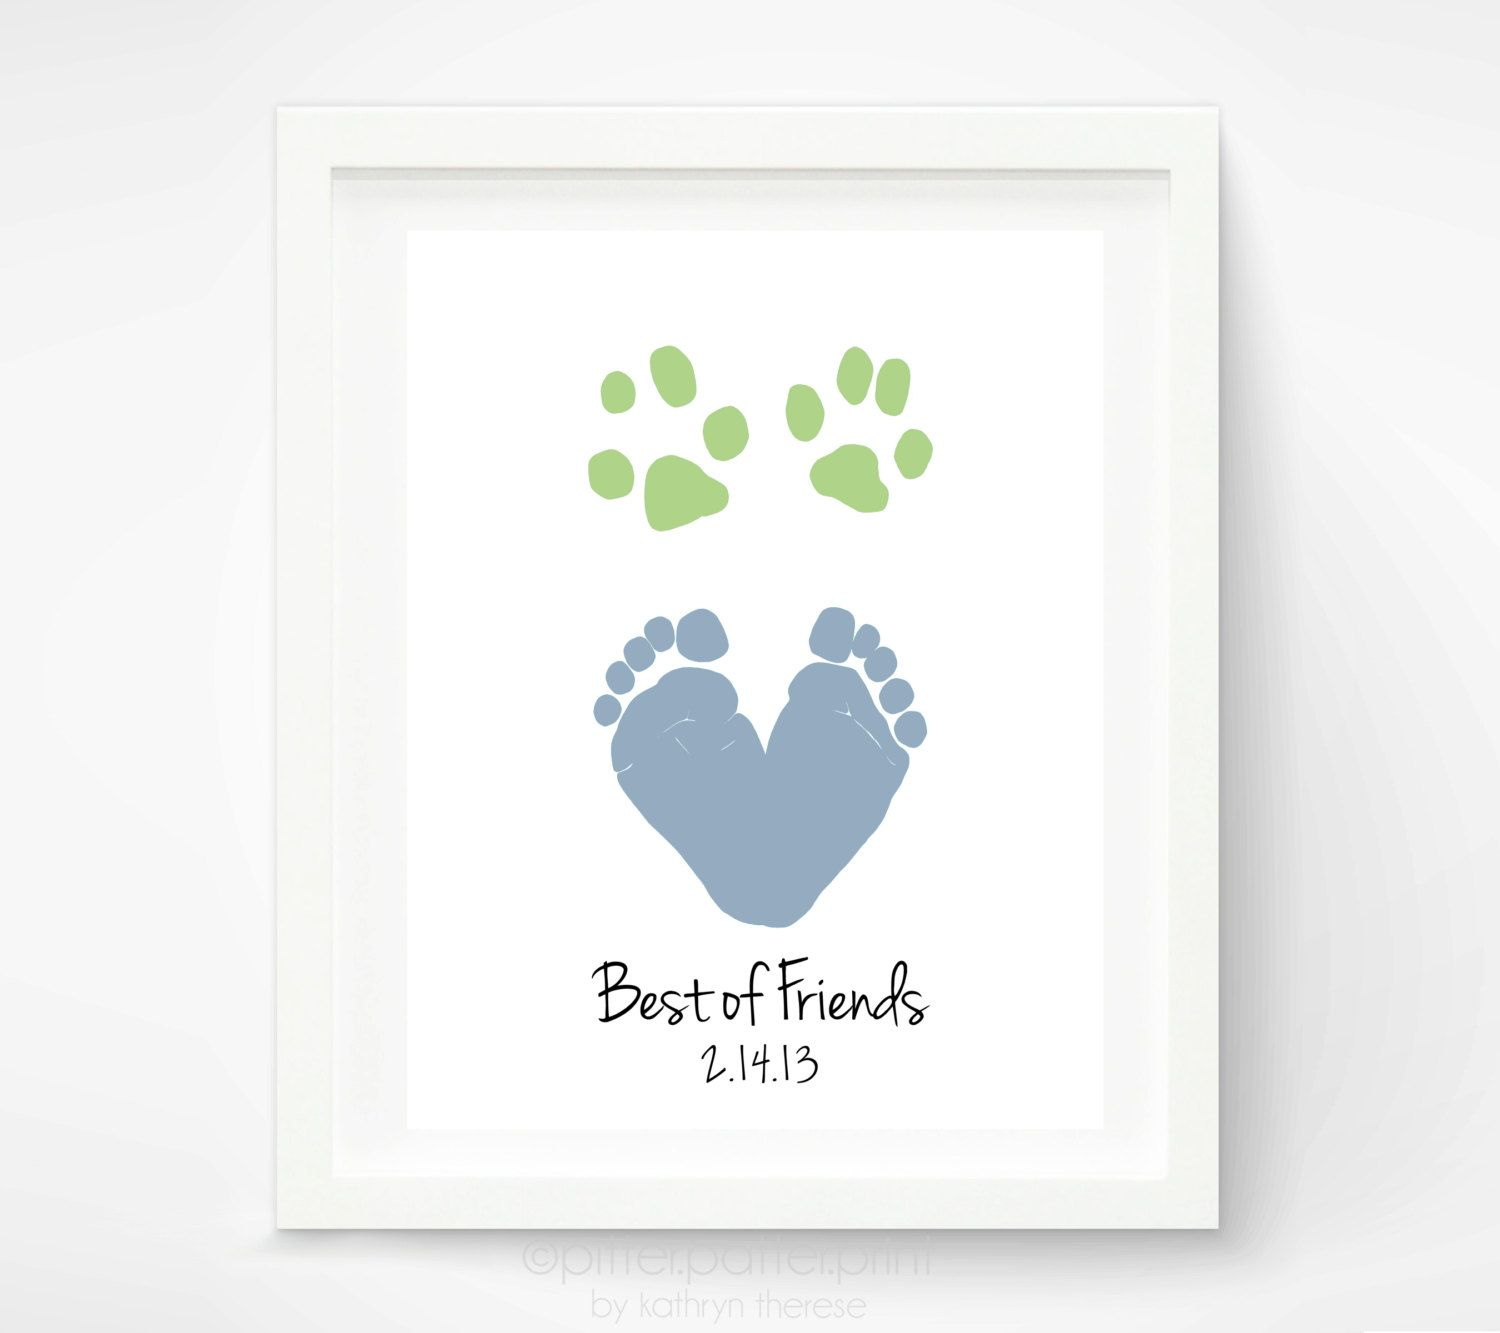 Newborn Baby Footprint Handprint Photo Frame Kit Newborn Keepsake Pet Paw Print Photo Frame Baby Shower Gift Birthday Gift Pink